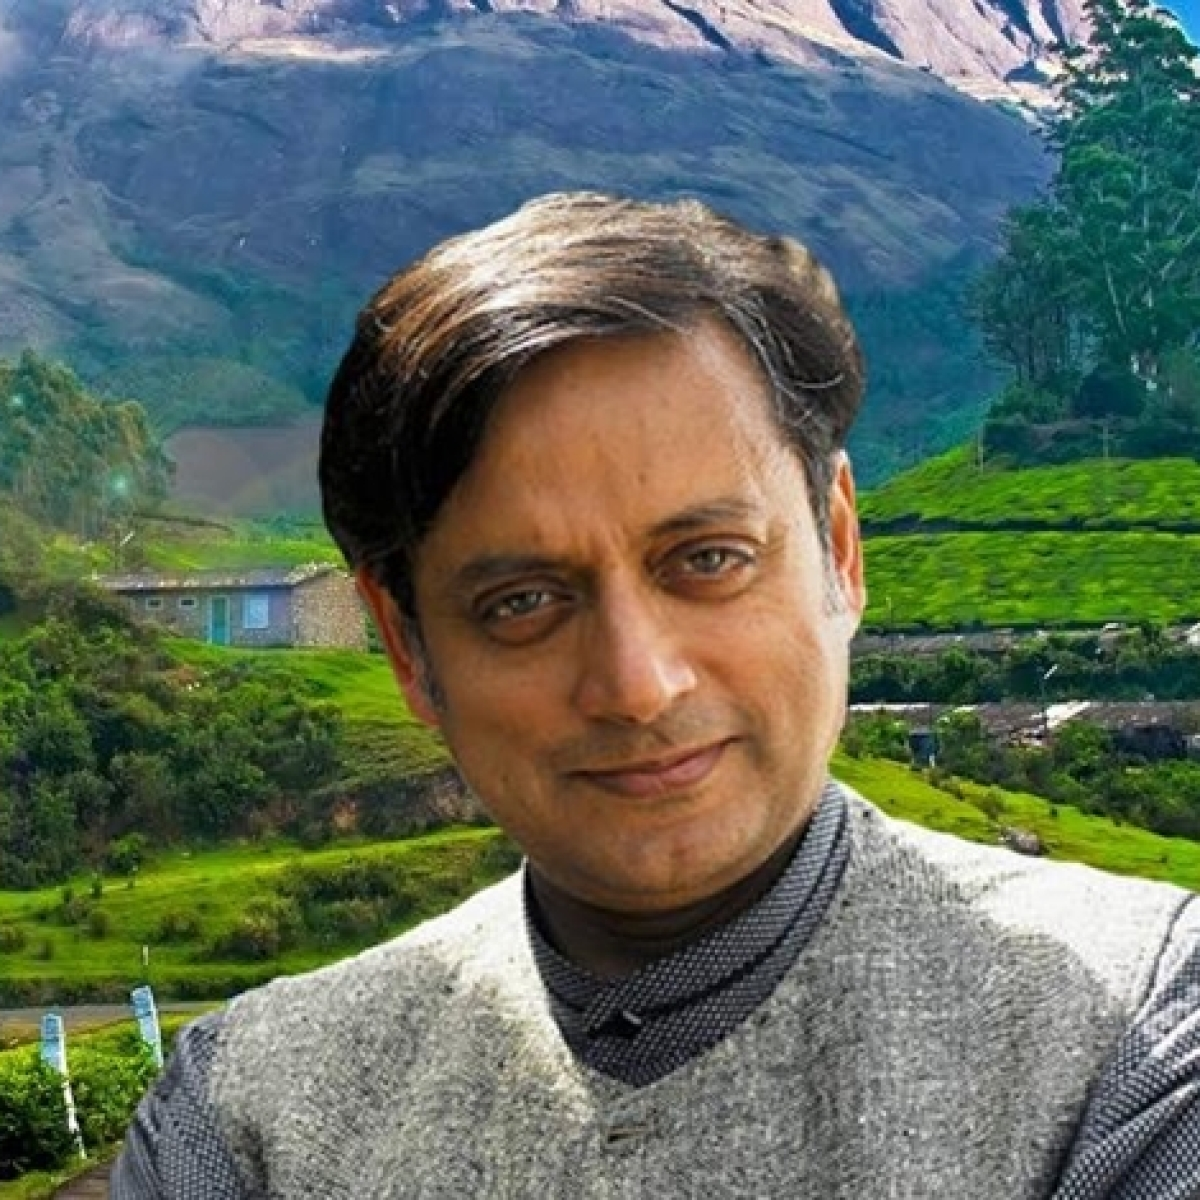 'Mastering Photoshop in 5 minutes': Shashi Tharoor's 'World Environment Day' post has Twitter in splits